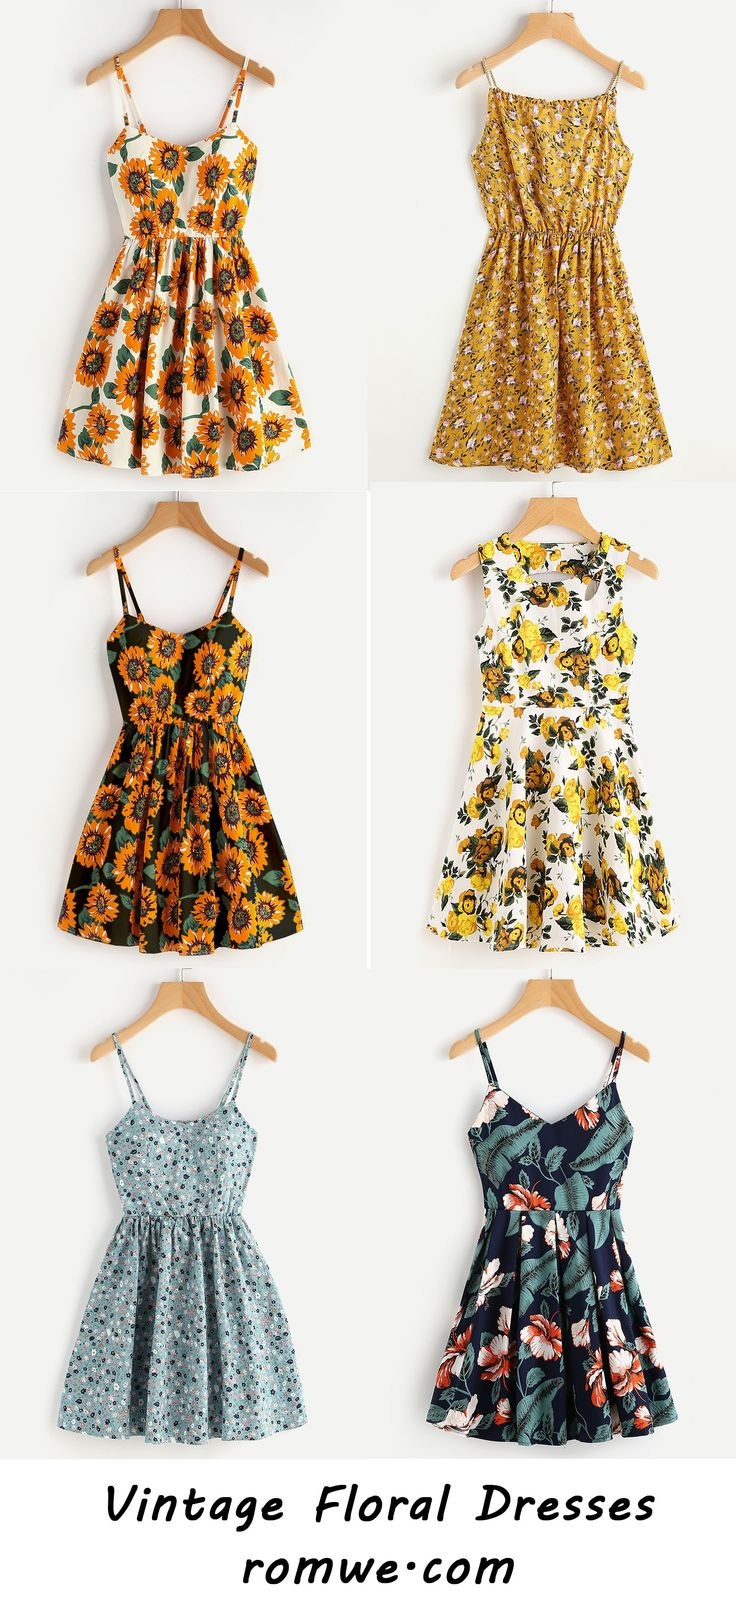 Floral Dresses with soft material, special design and vintage pattern from romwe.com (Diy Ropa)